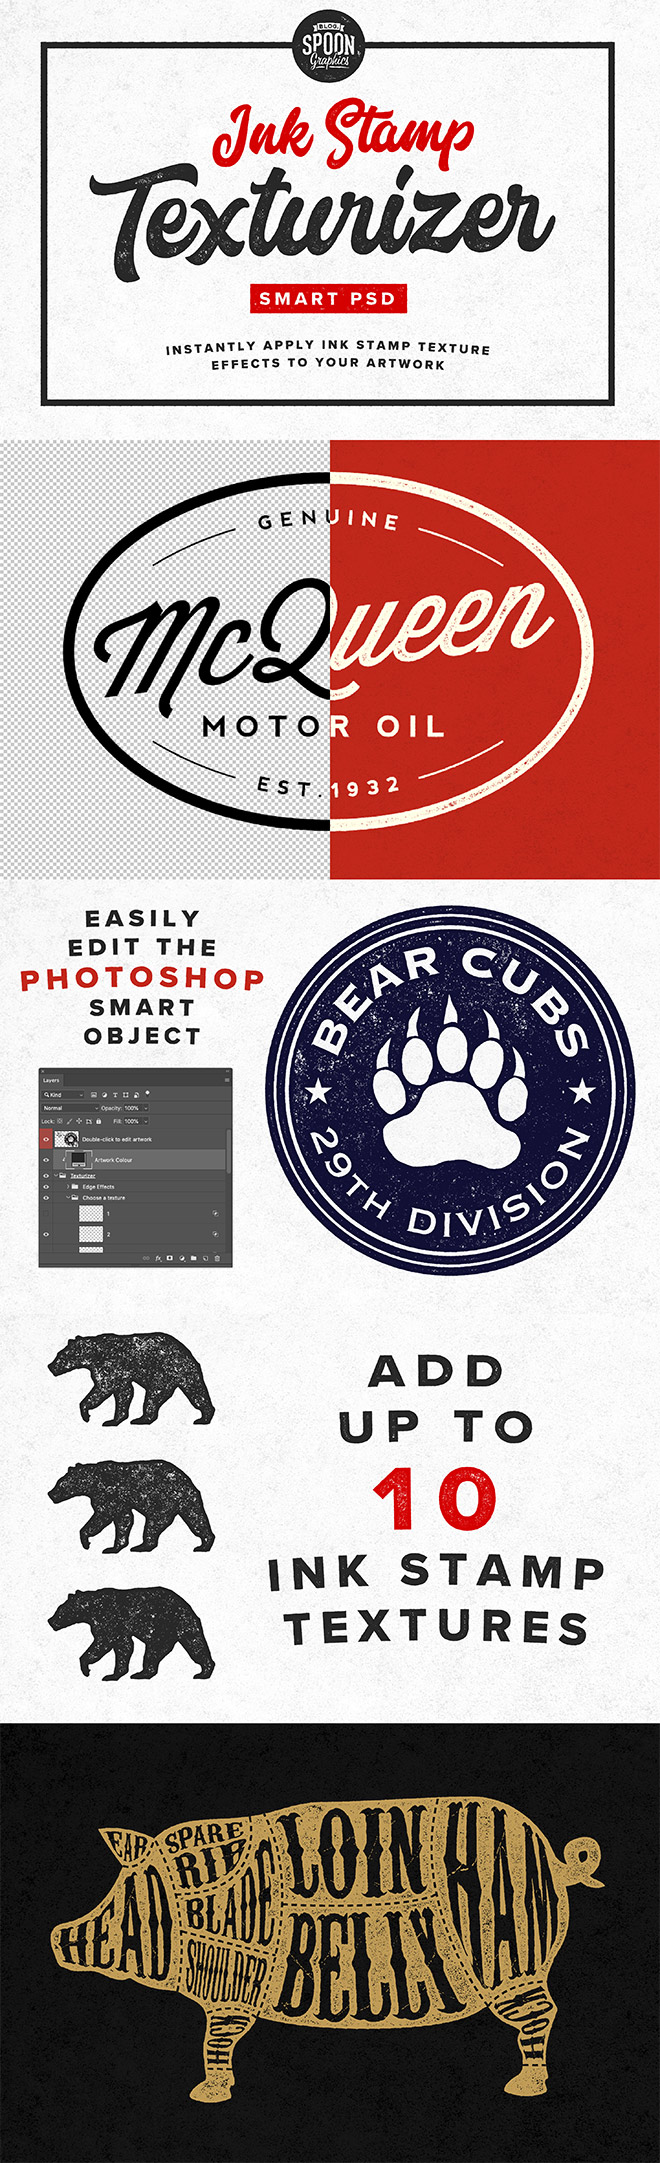 Free Ink Stamp Texturizer Smart PSD for Adobe Photoshop